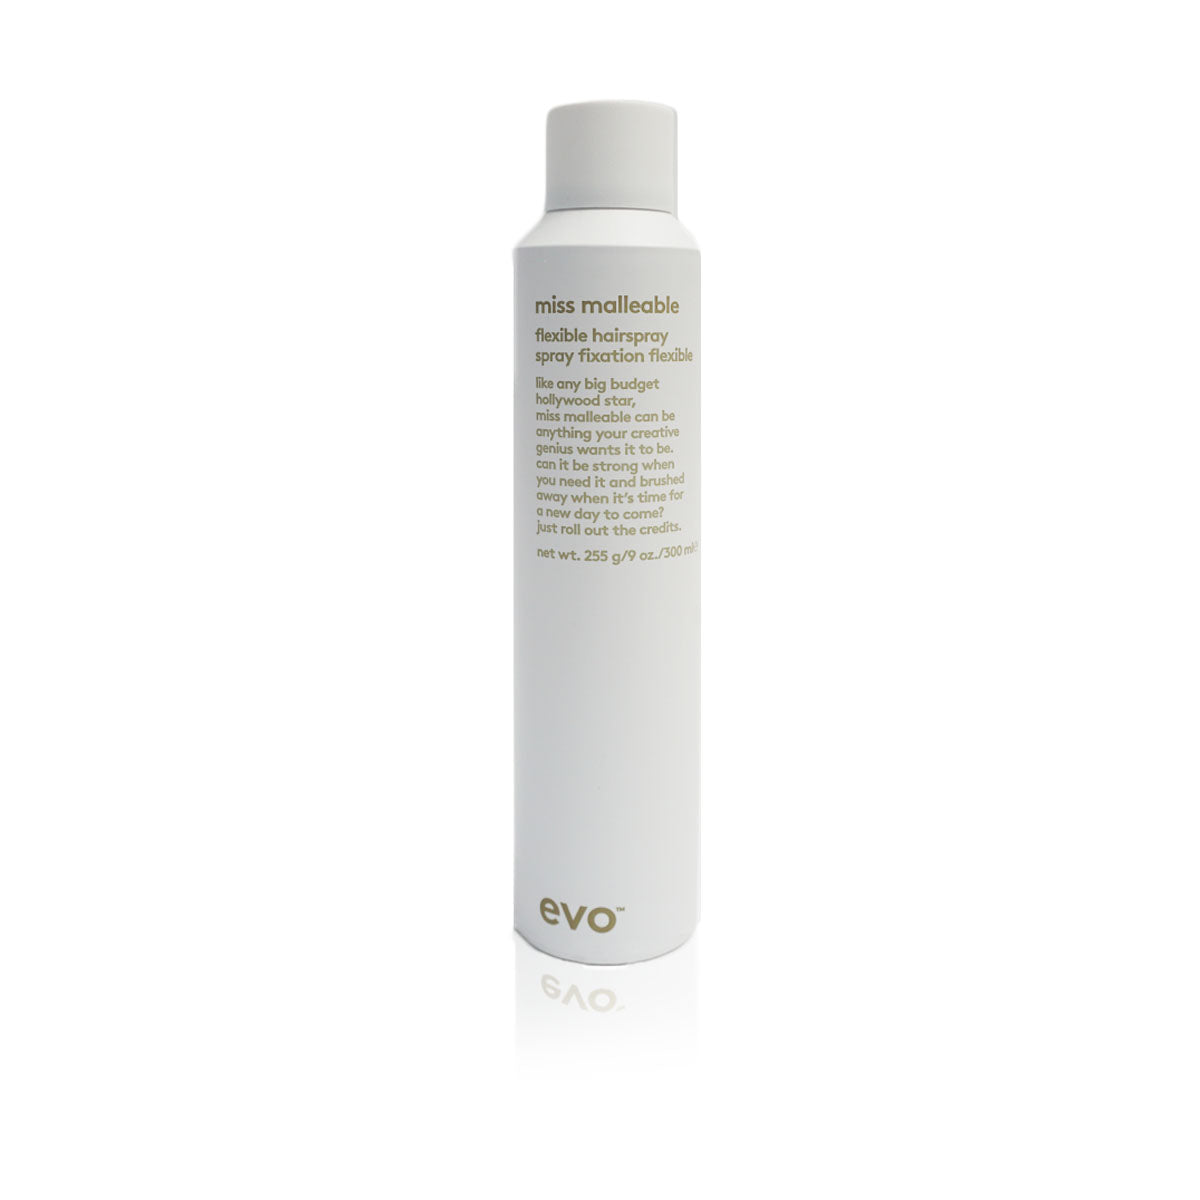 Evo miss malleable flexible hairspray, improves styling along and slight hold - Case of 3 bottles 30ml / 1.01fl.oz (New)